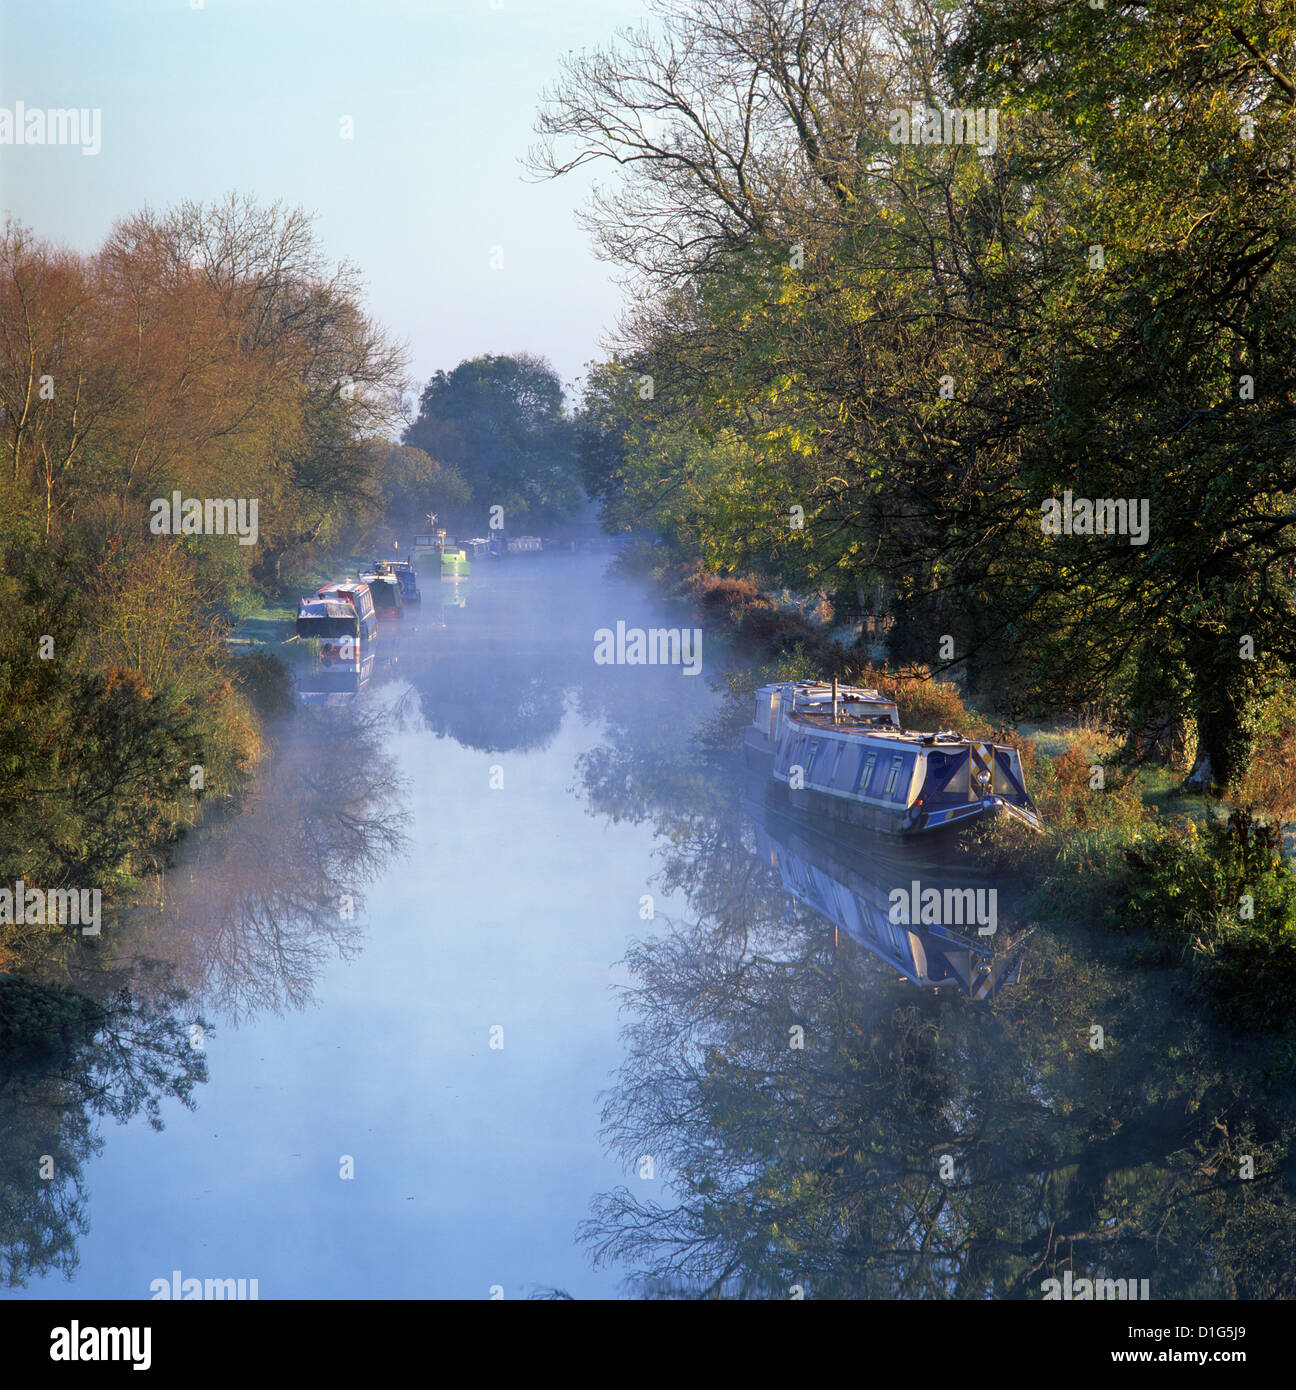 Kennet and Avon Canal dans la brume, Grand Bedwyn, Wiltshire, Angleterre, Royaume-Uni, Europe Photo Stock